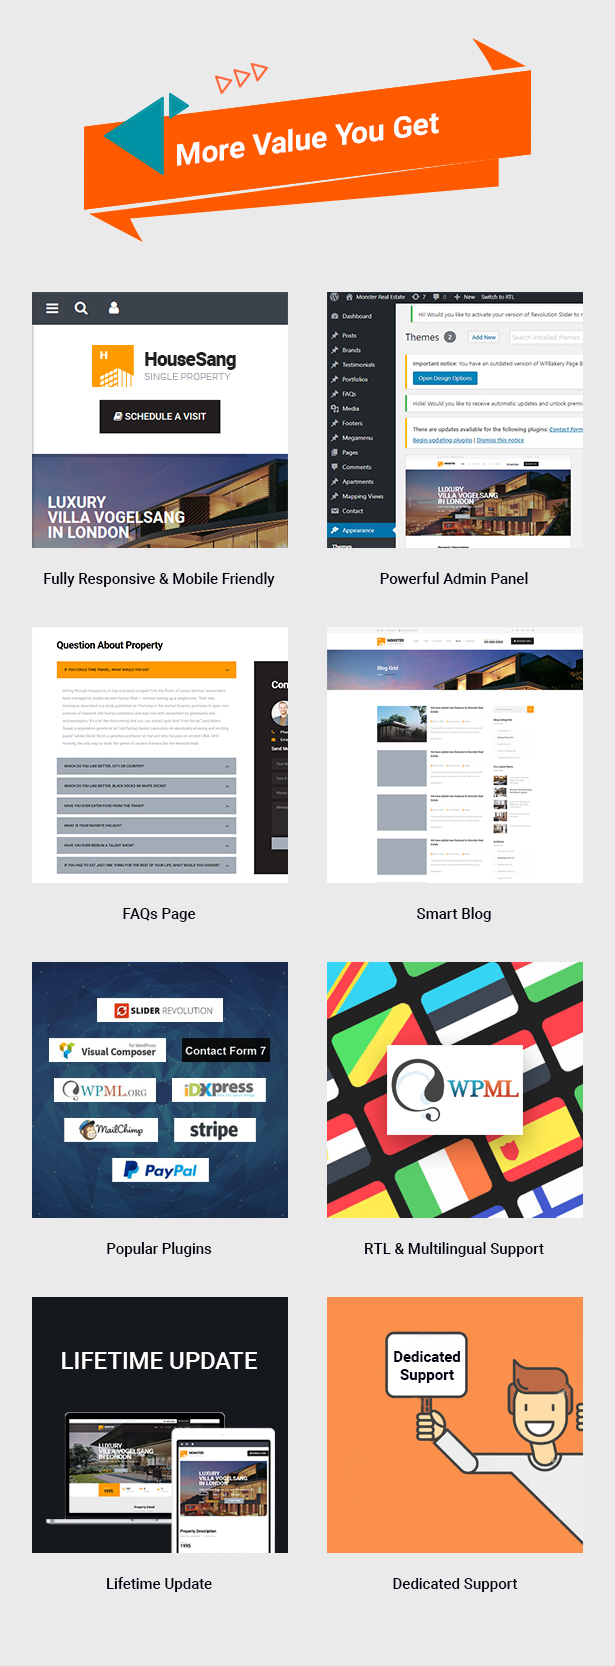 Fantastic Features in HouseSang Single Property WordPress Theme